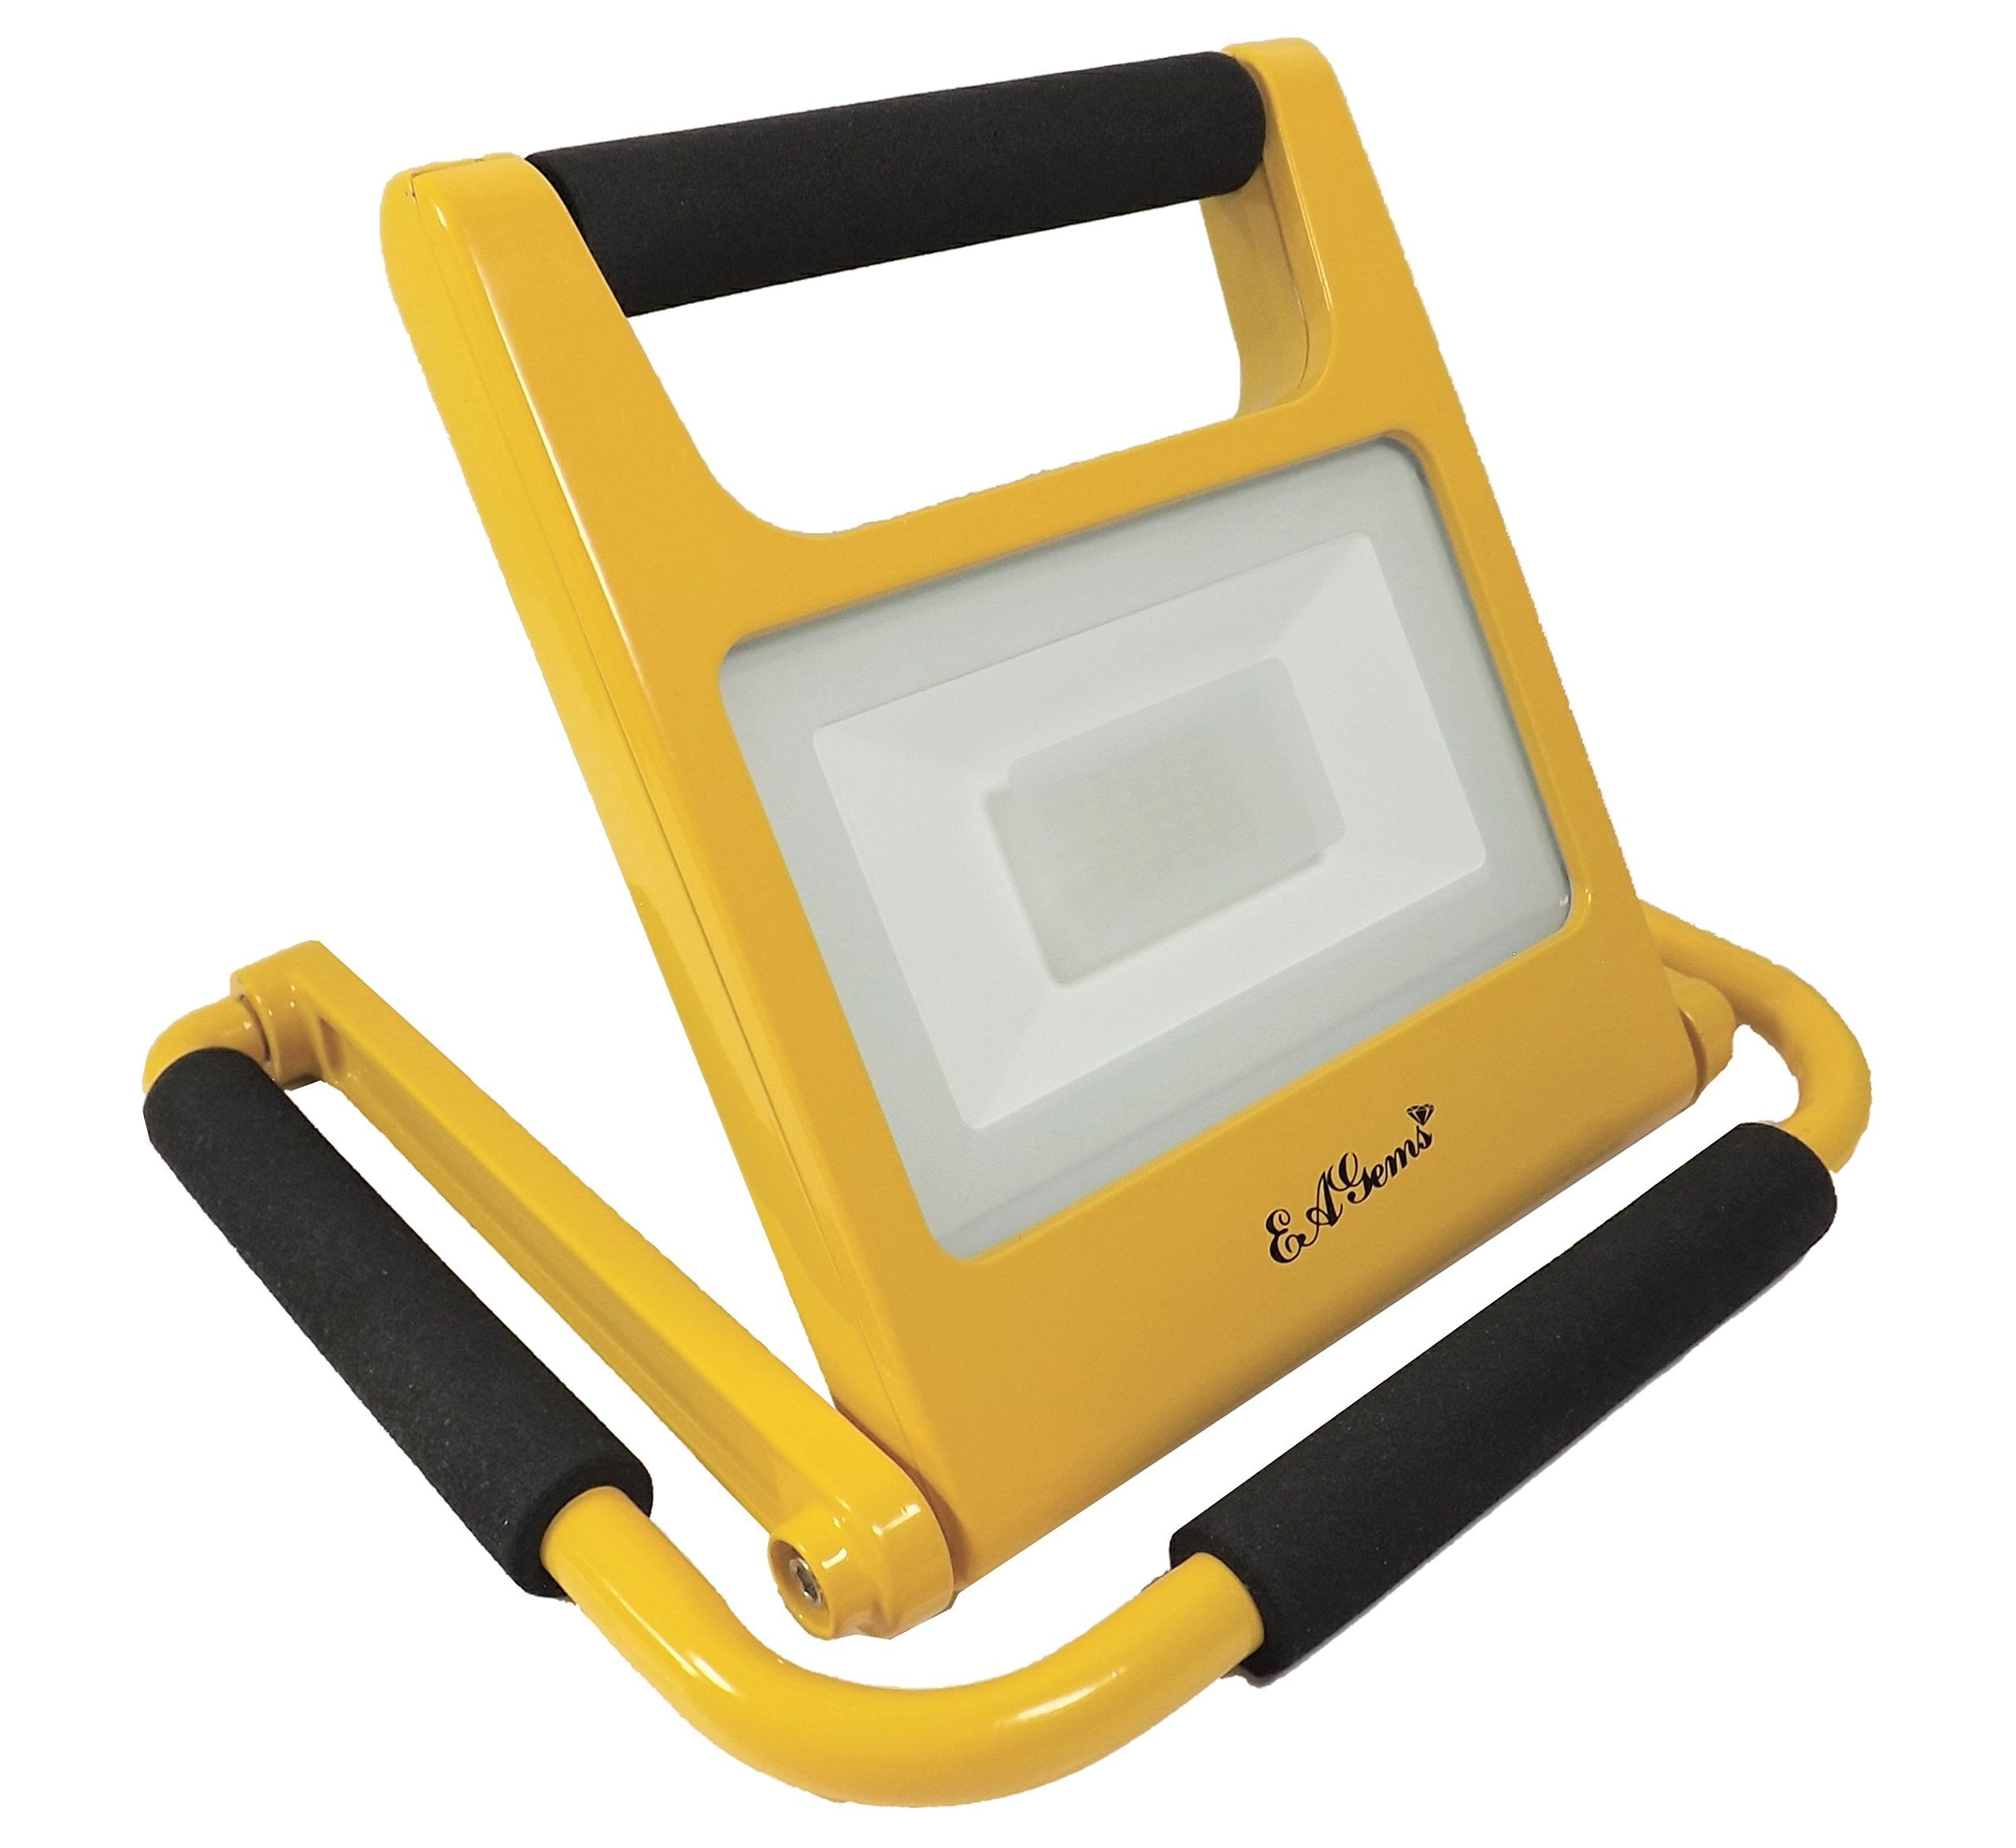 LED Light by EAGems - Rechargeable 20 Watt Work Lamp, Great for Home ...